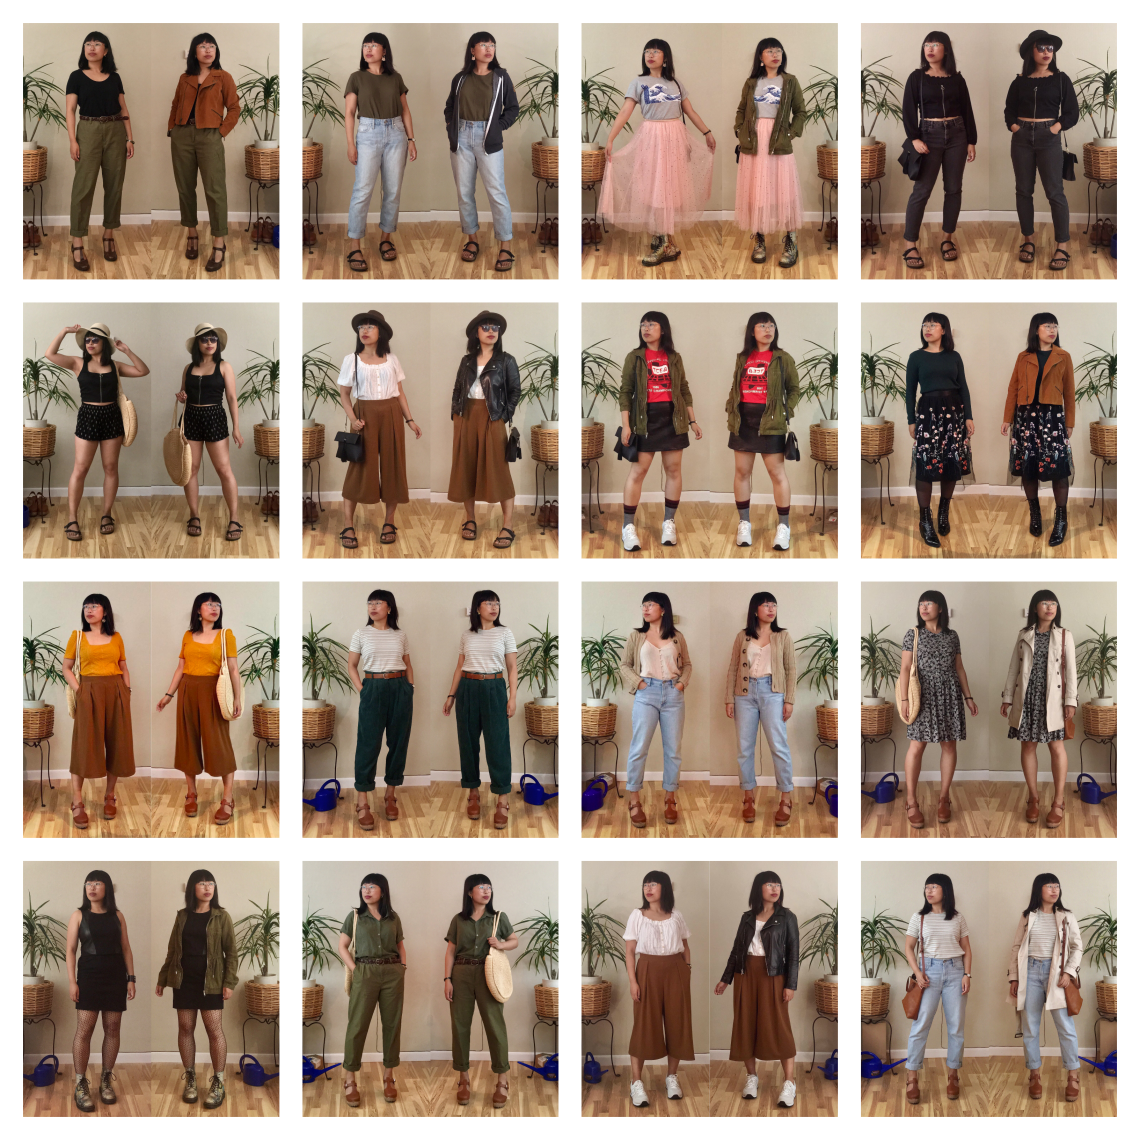 July 1-16 2019 Outfits